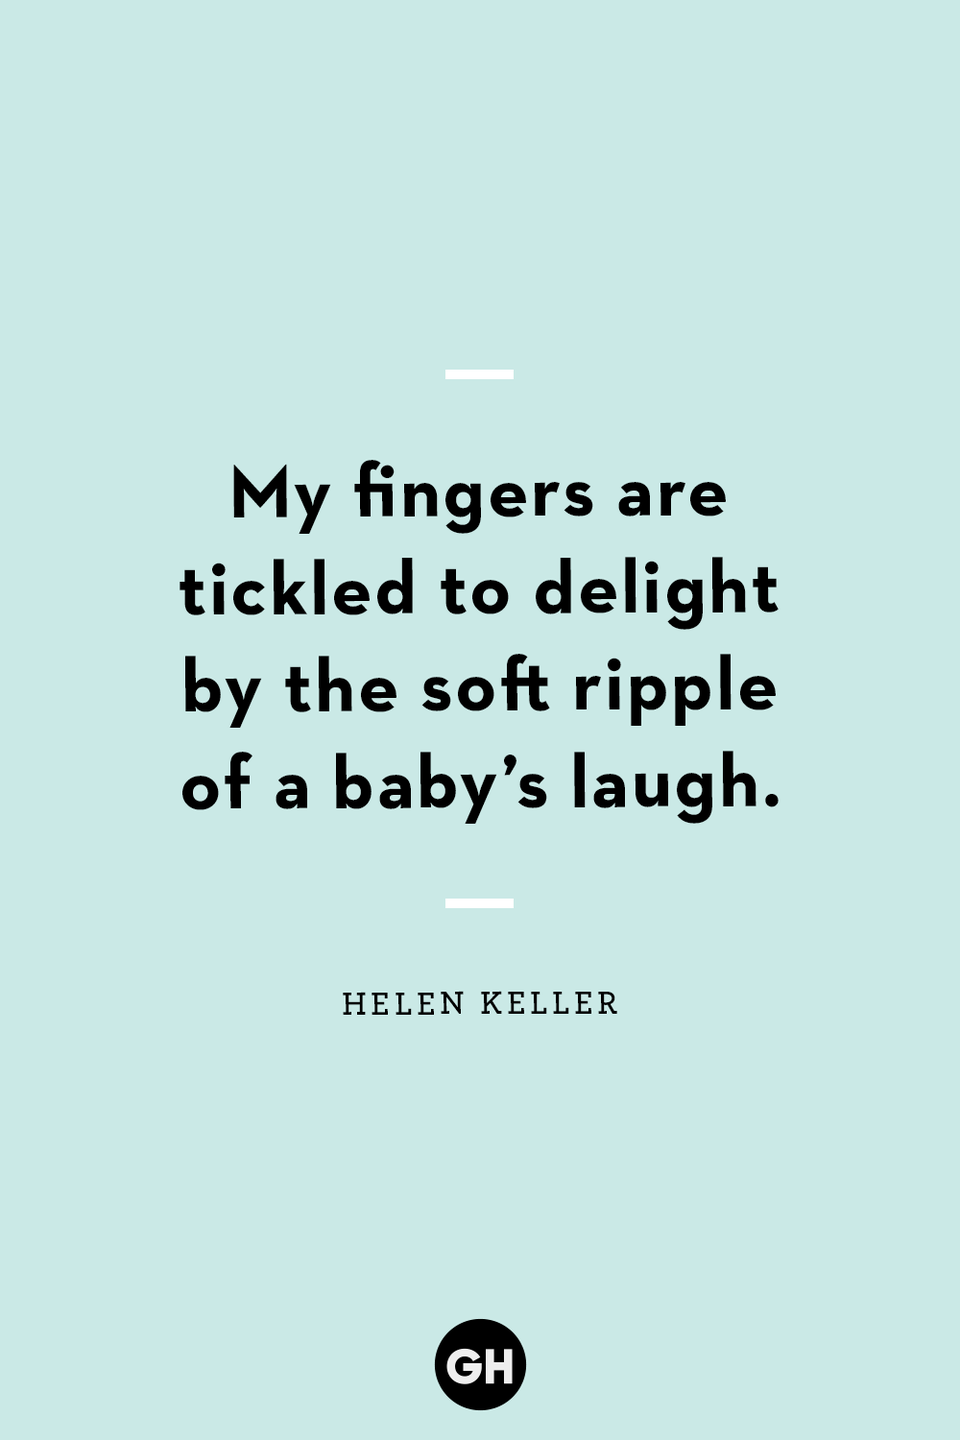 """<p>My fingers are tickled to delight by the soft ripple of a baby's laugh.</p><p><strong>RELATED:</strong> <a href=""""https://www.goodhousekeeping.com/holidays/fathers-day/g2419/fathers-day-quotes/"""" rel=""""nofollow noopener"""" target=""""_blank"""" data-ylk=""""slk:Father's Day Quotes to Share With Your Amazing Dad"""" class=""""link rapid-noclick-resp"""">Father's Day Quotes to Share With Your Amazing Dad</a></p>"""